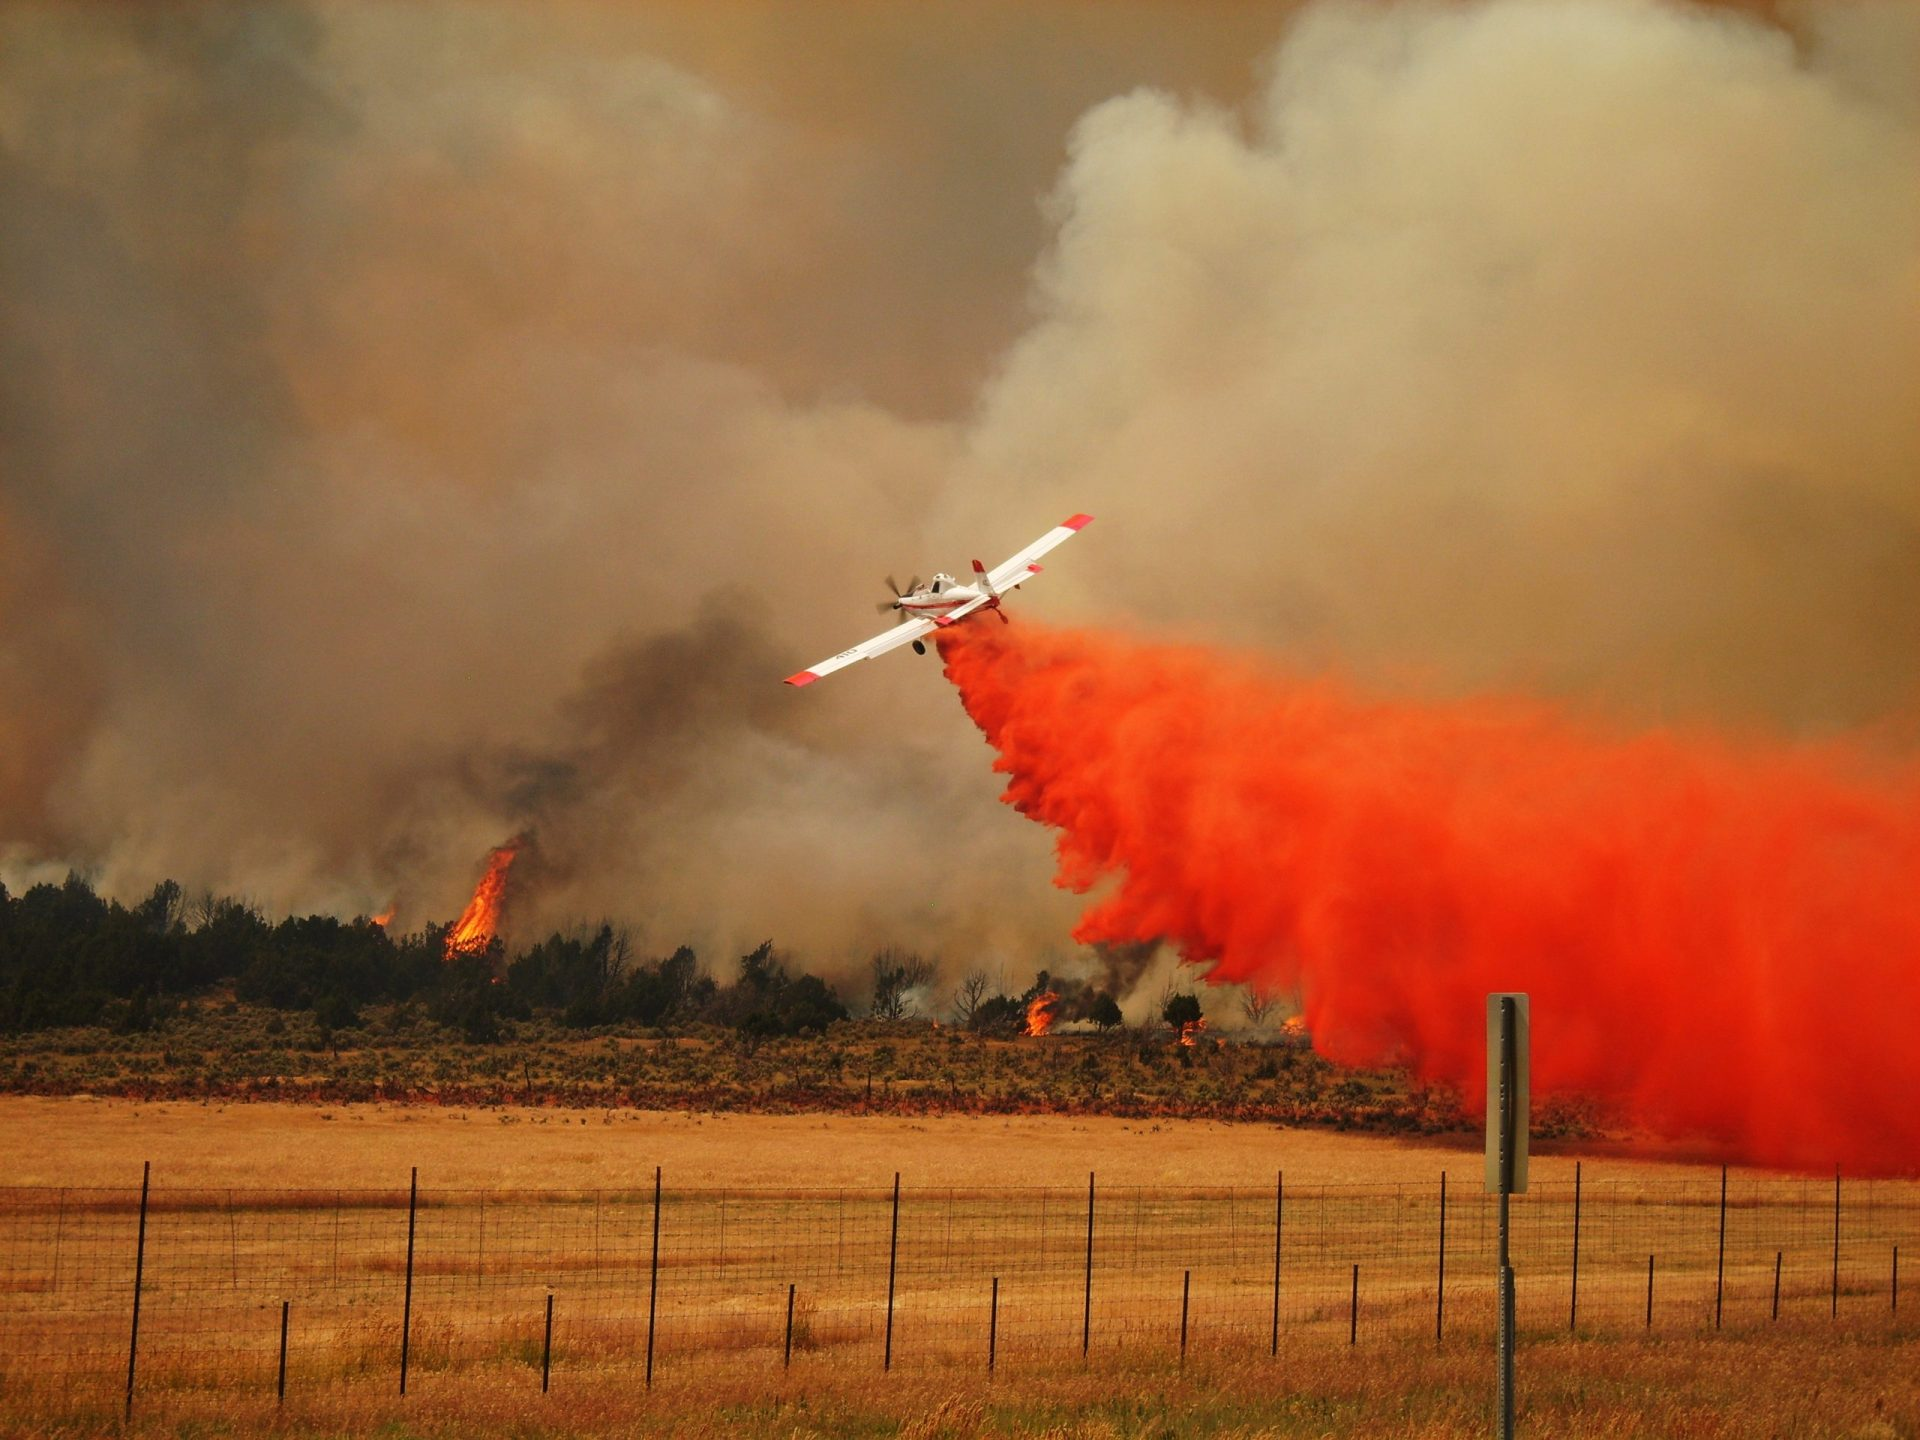 A SEAT drops fire retardant. Image: Keith Hackbarth